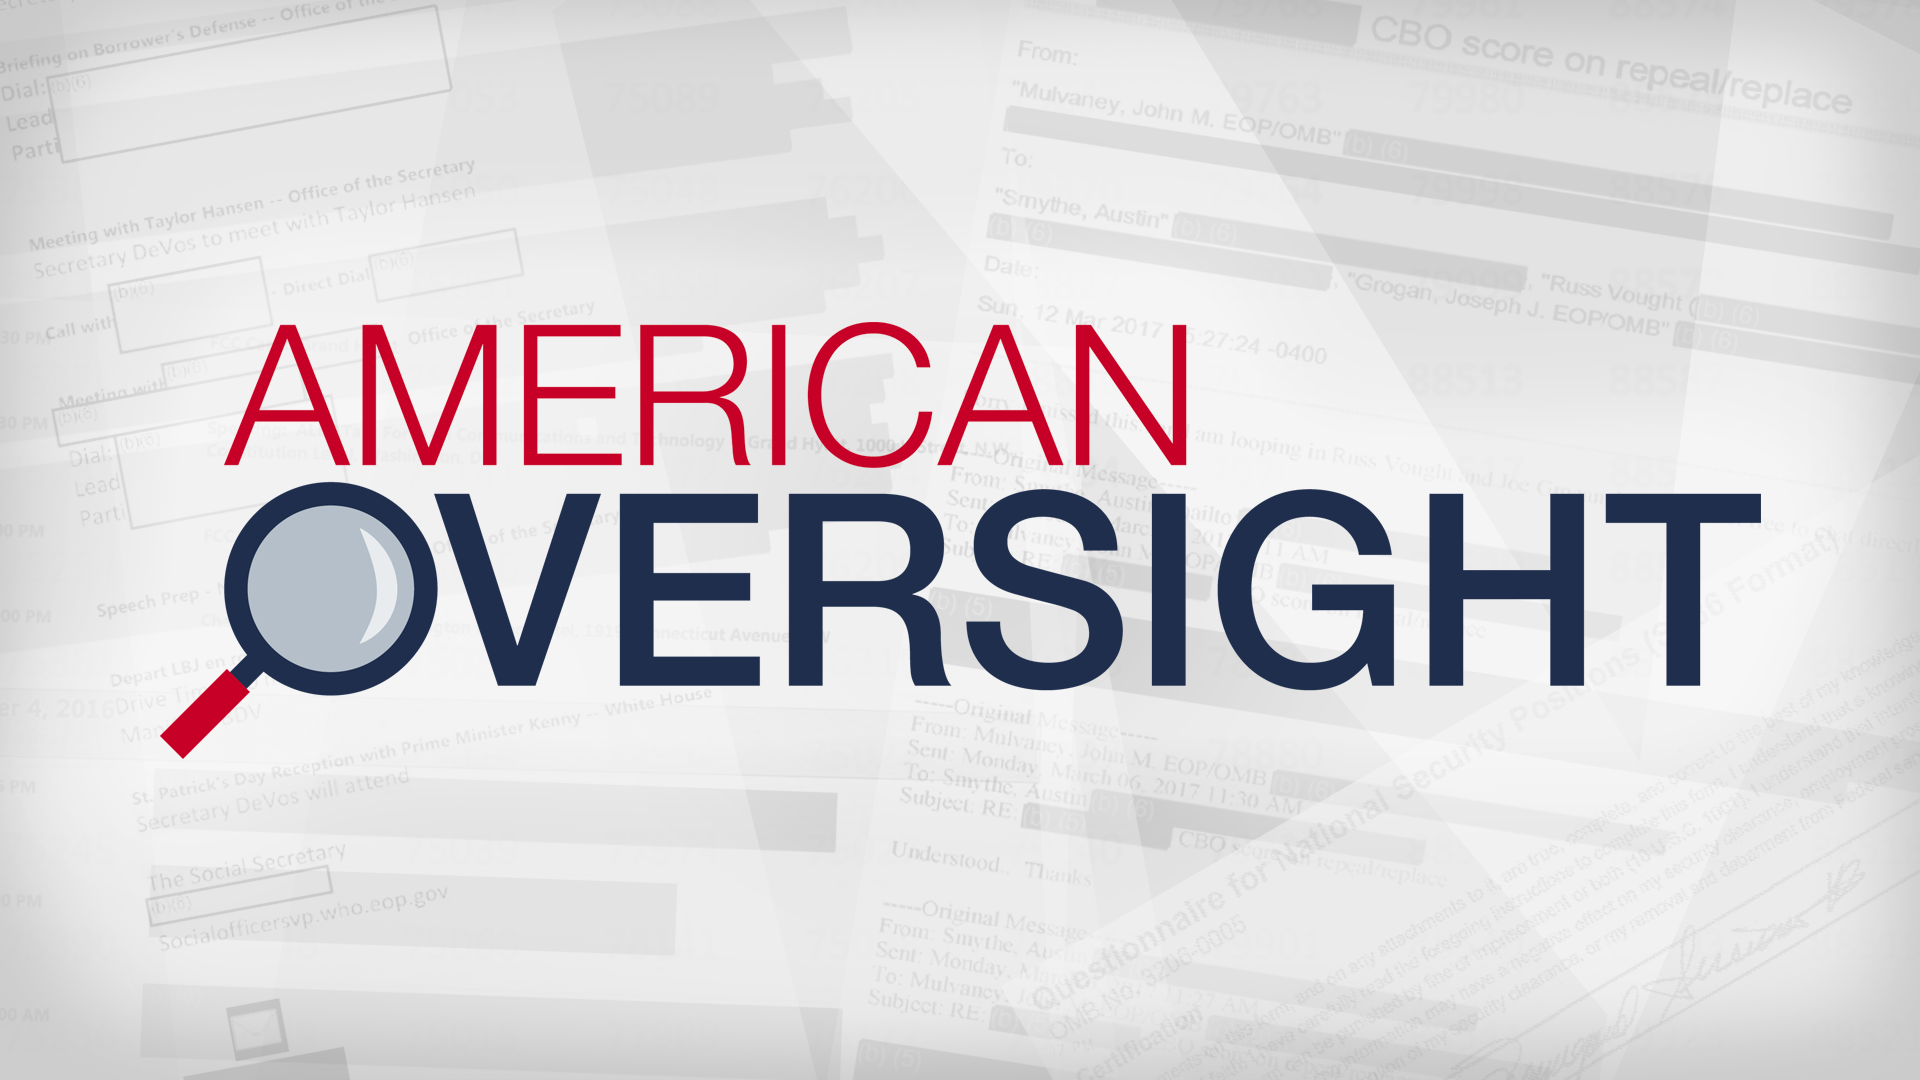 https://www.americanoversight.org/wp-content/uploads/2017/12/AmericanOversight_FOIAs.png